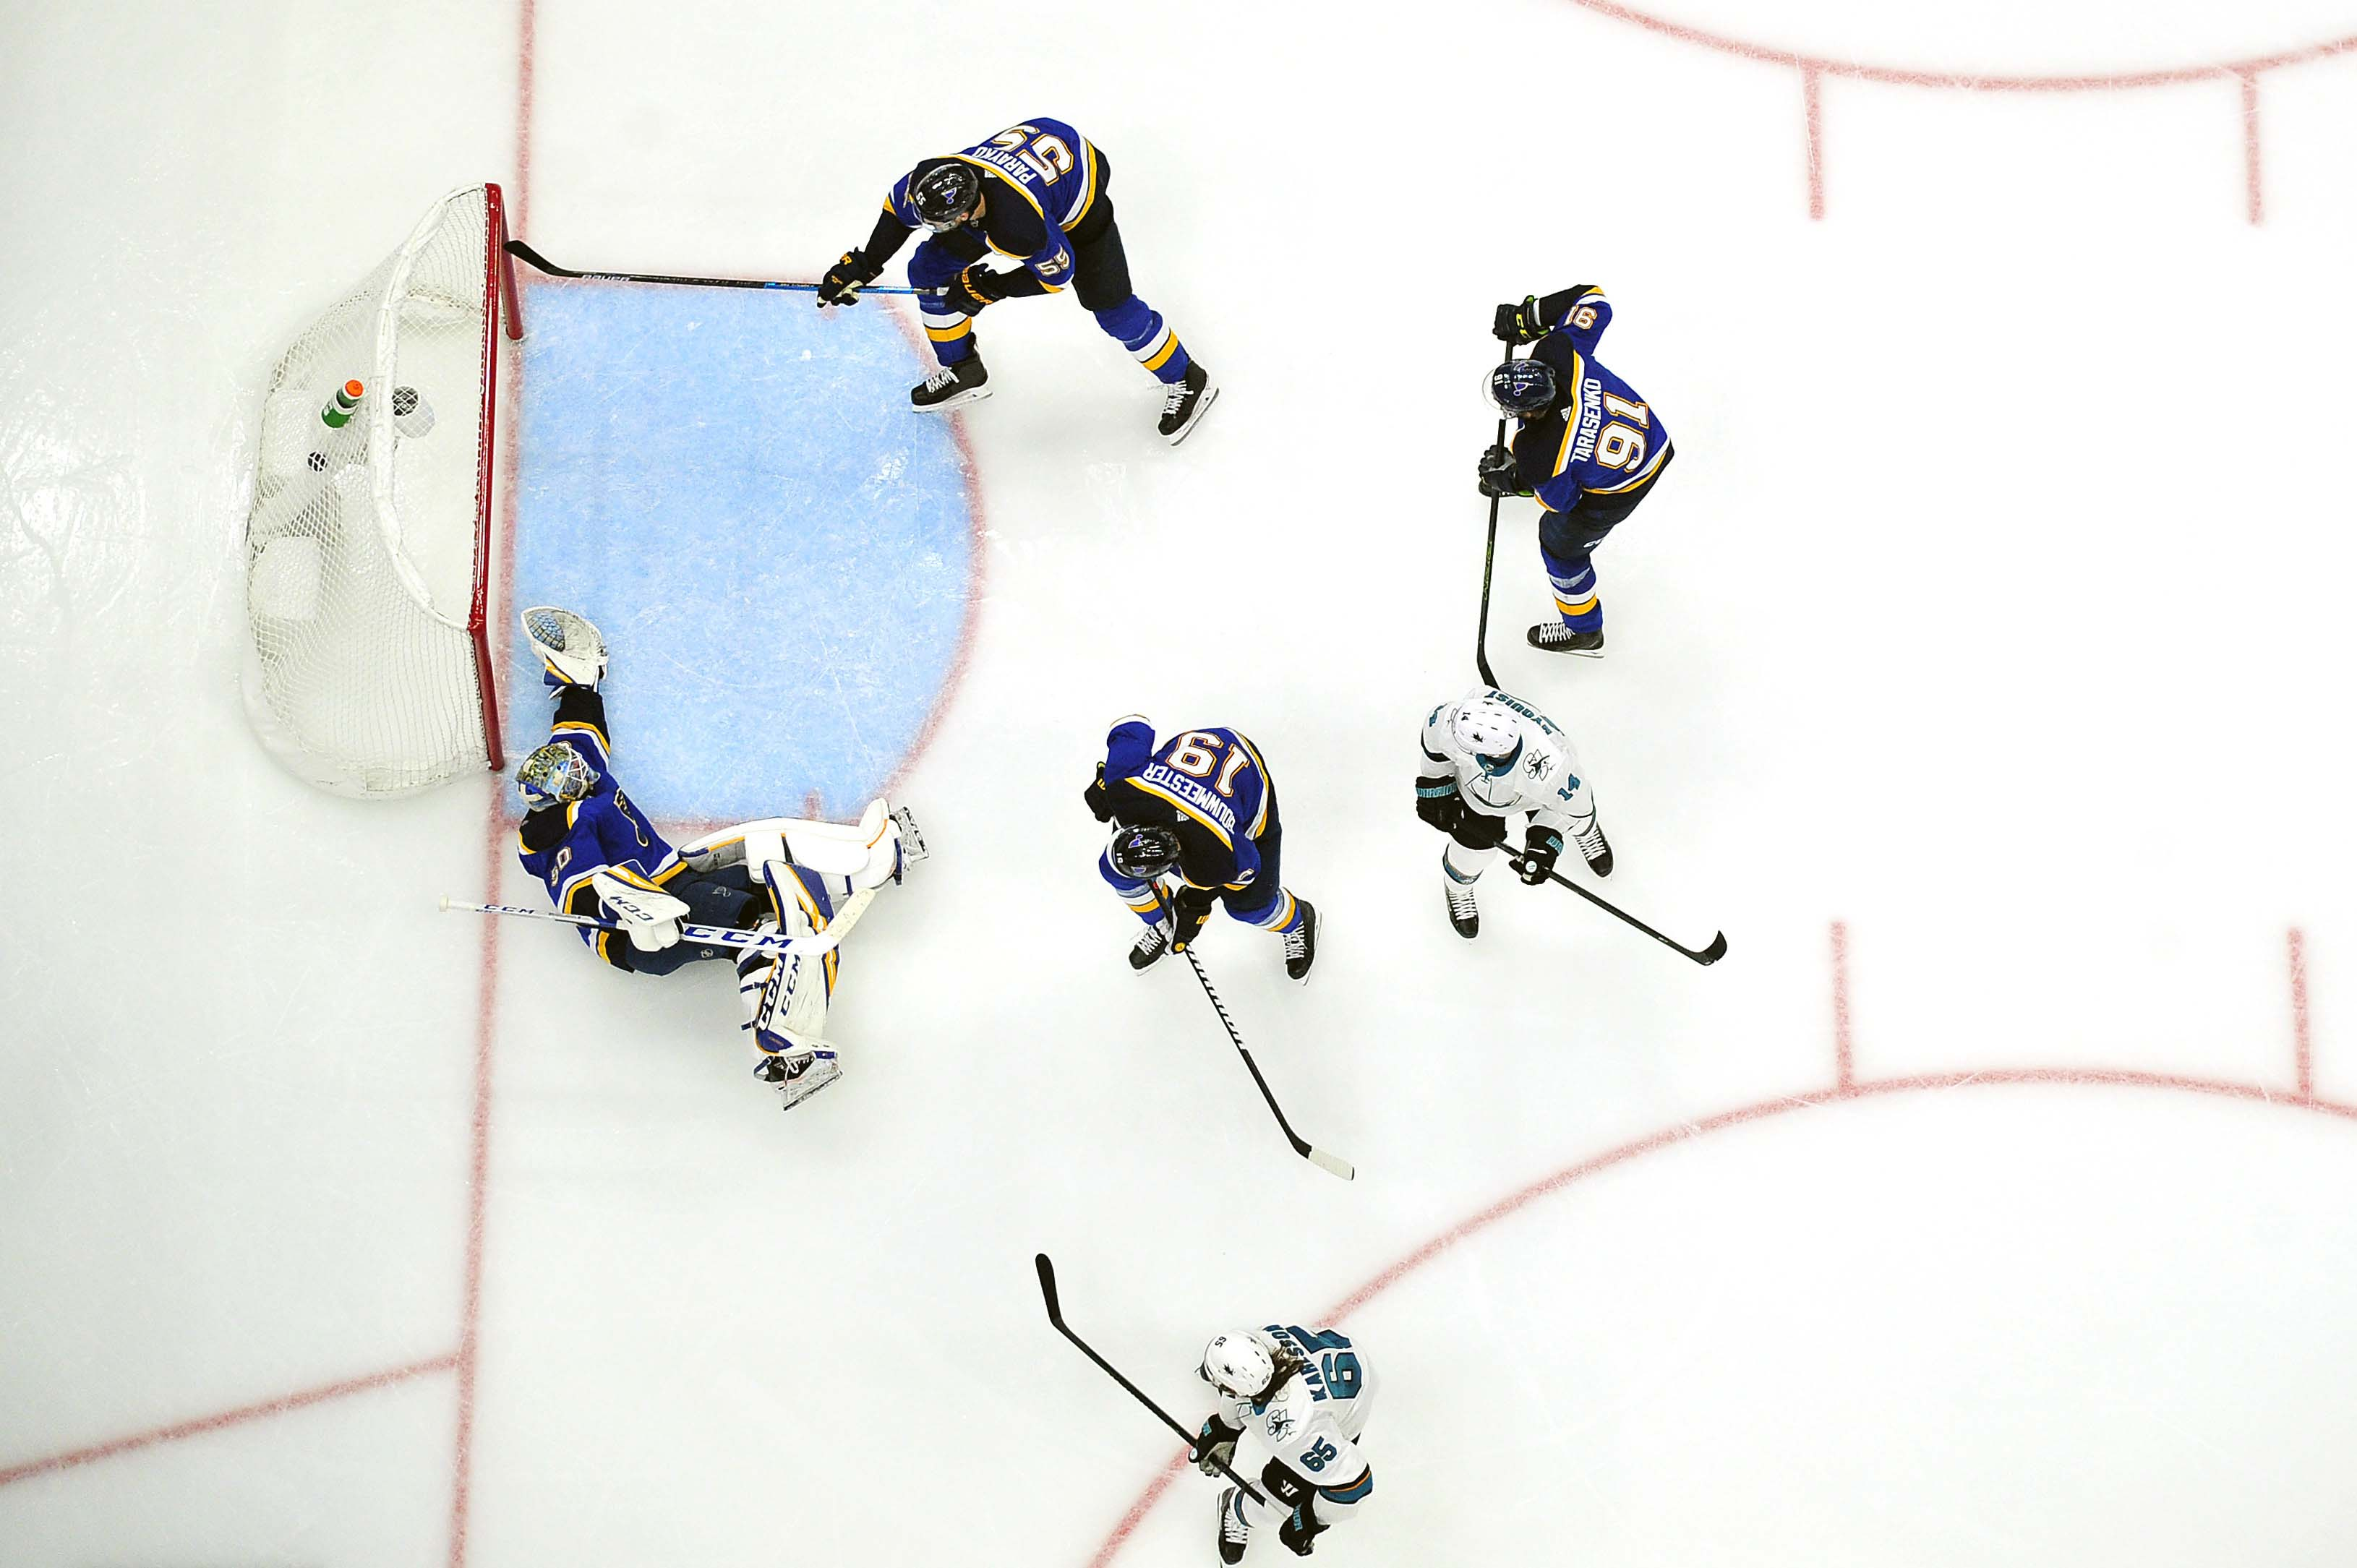 NHL: Stanley Cup Playoffs-San Jose Sharks at St. Louis Blues during Game 3 of the western conference final May 15, 2019